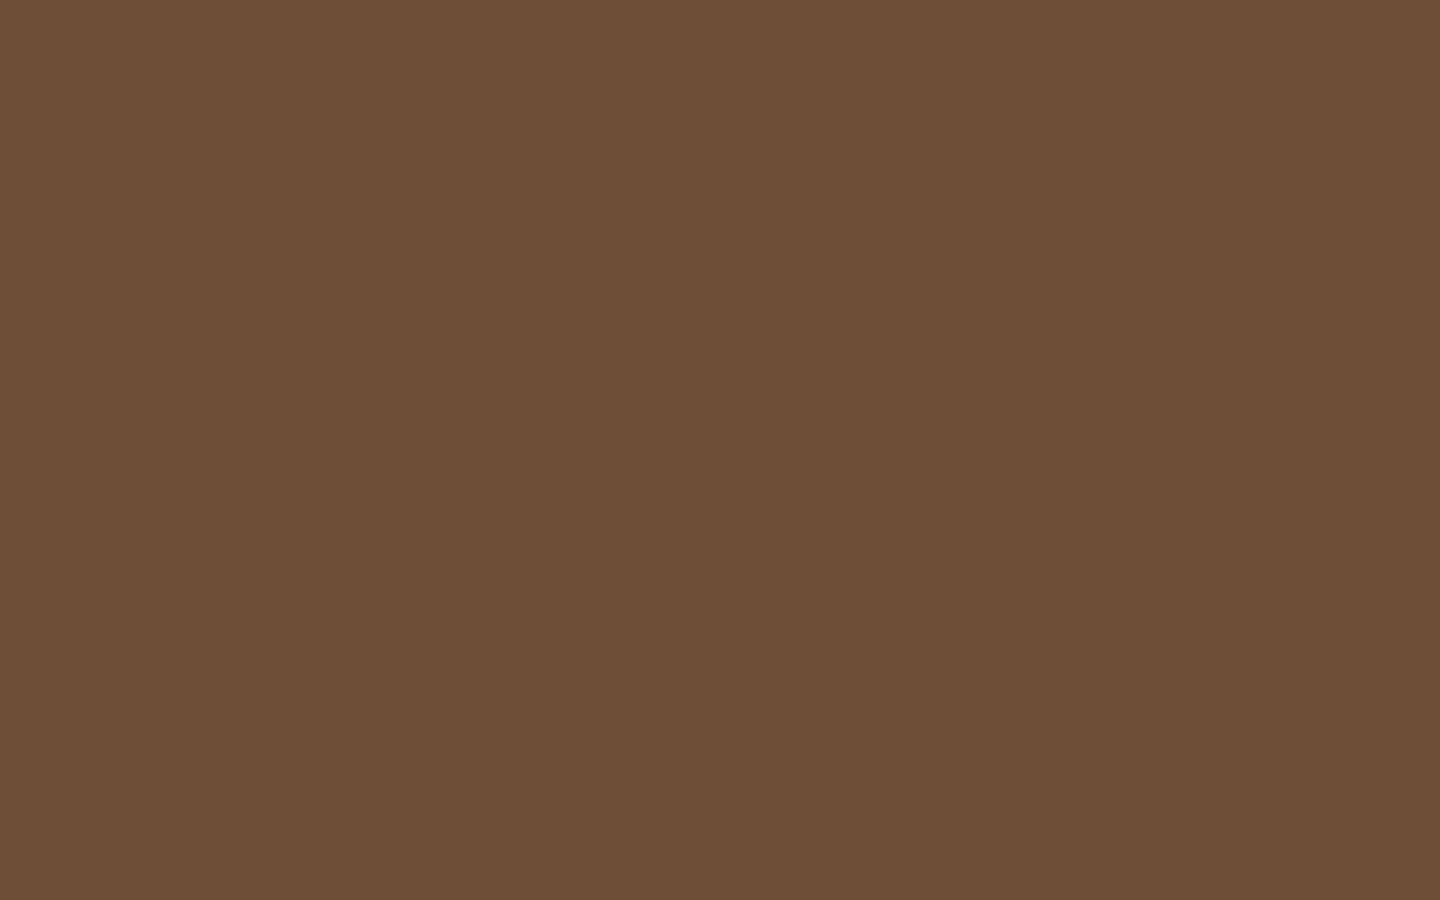 1440x900 Coffee Solid Color Background